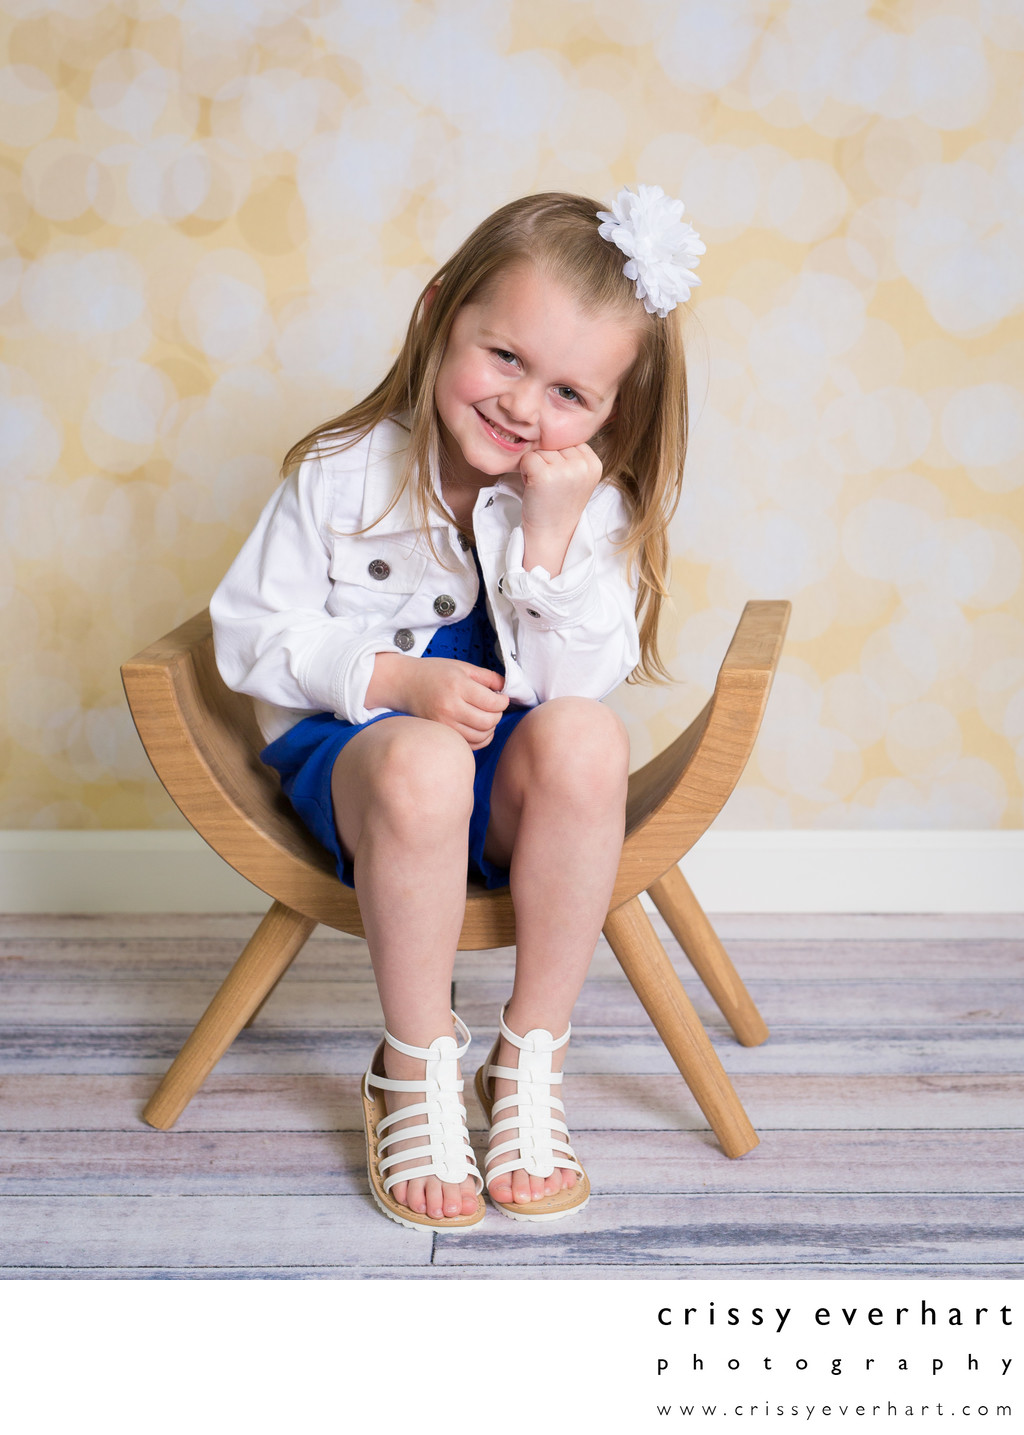 Pre-School Portraits with Props and Backdrops